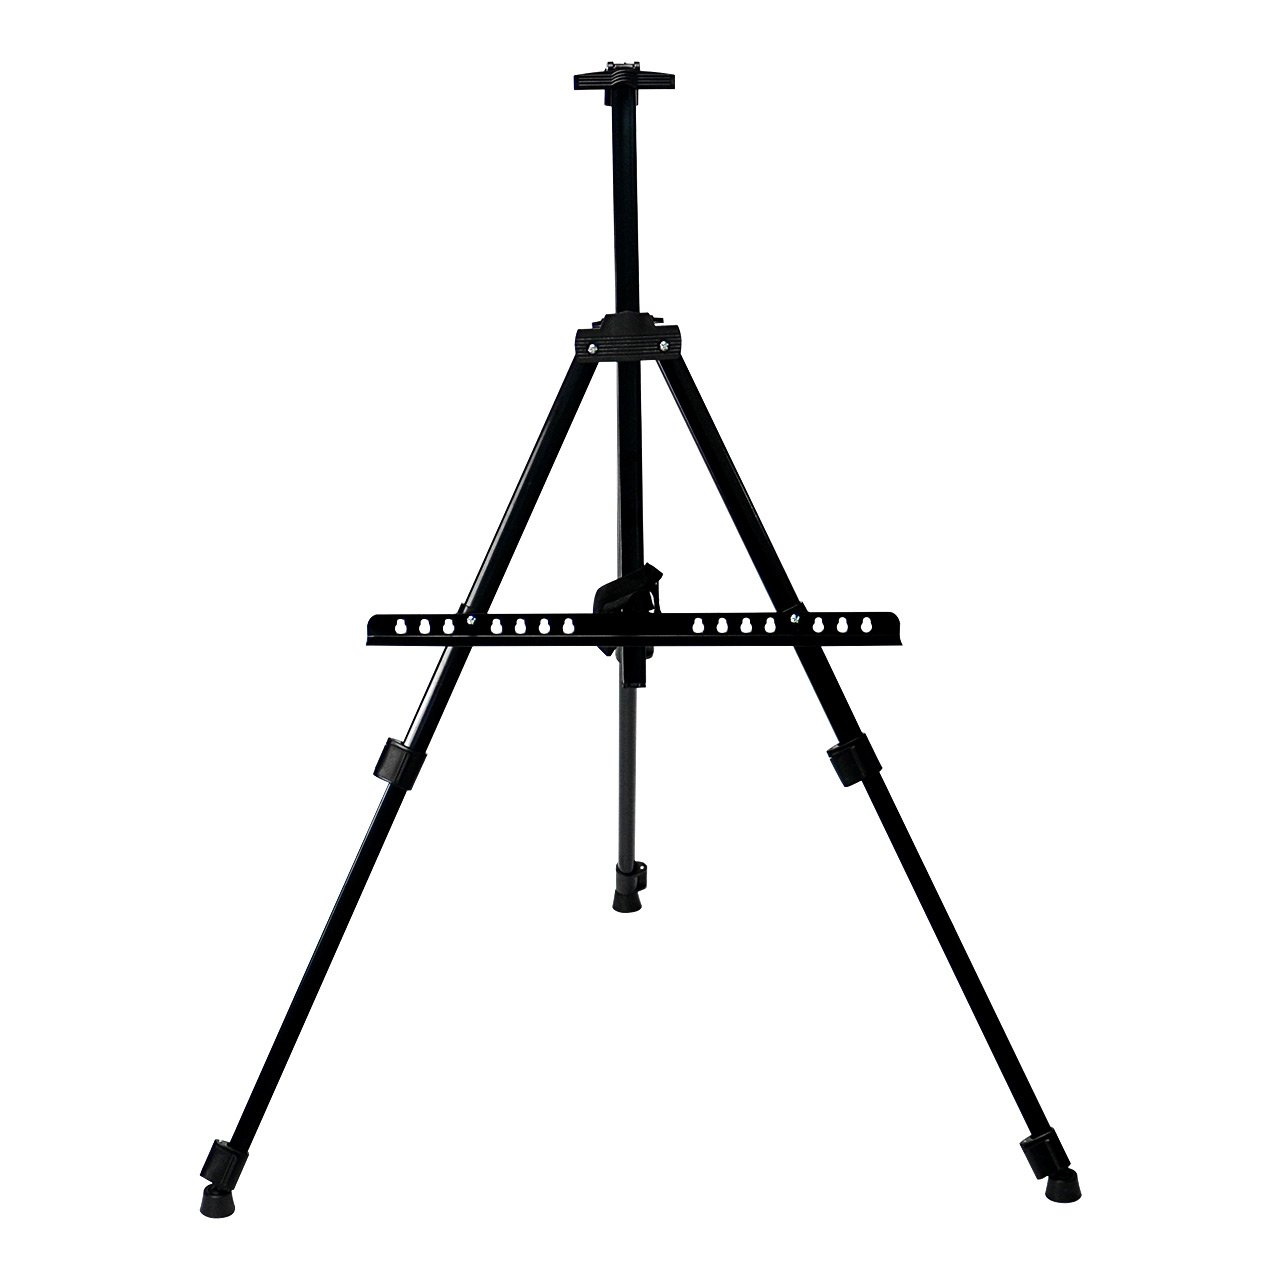 SaveOnMany 63'H Adjustable Portable Art Easel Metal Telescopic Tripod Display Stand for Painting Drawing Studio Field Floor & Table Top, with Carrying Case